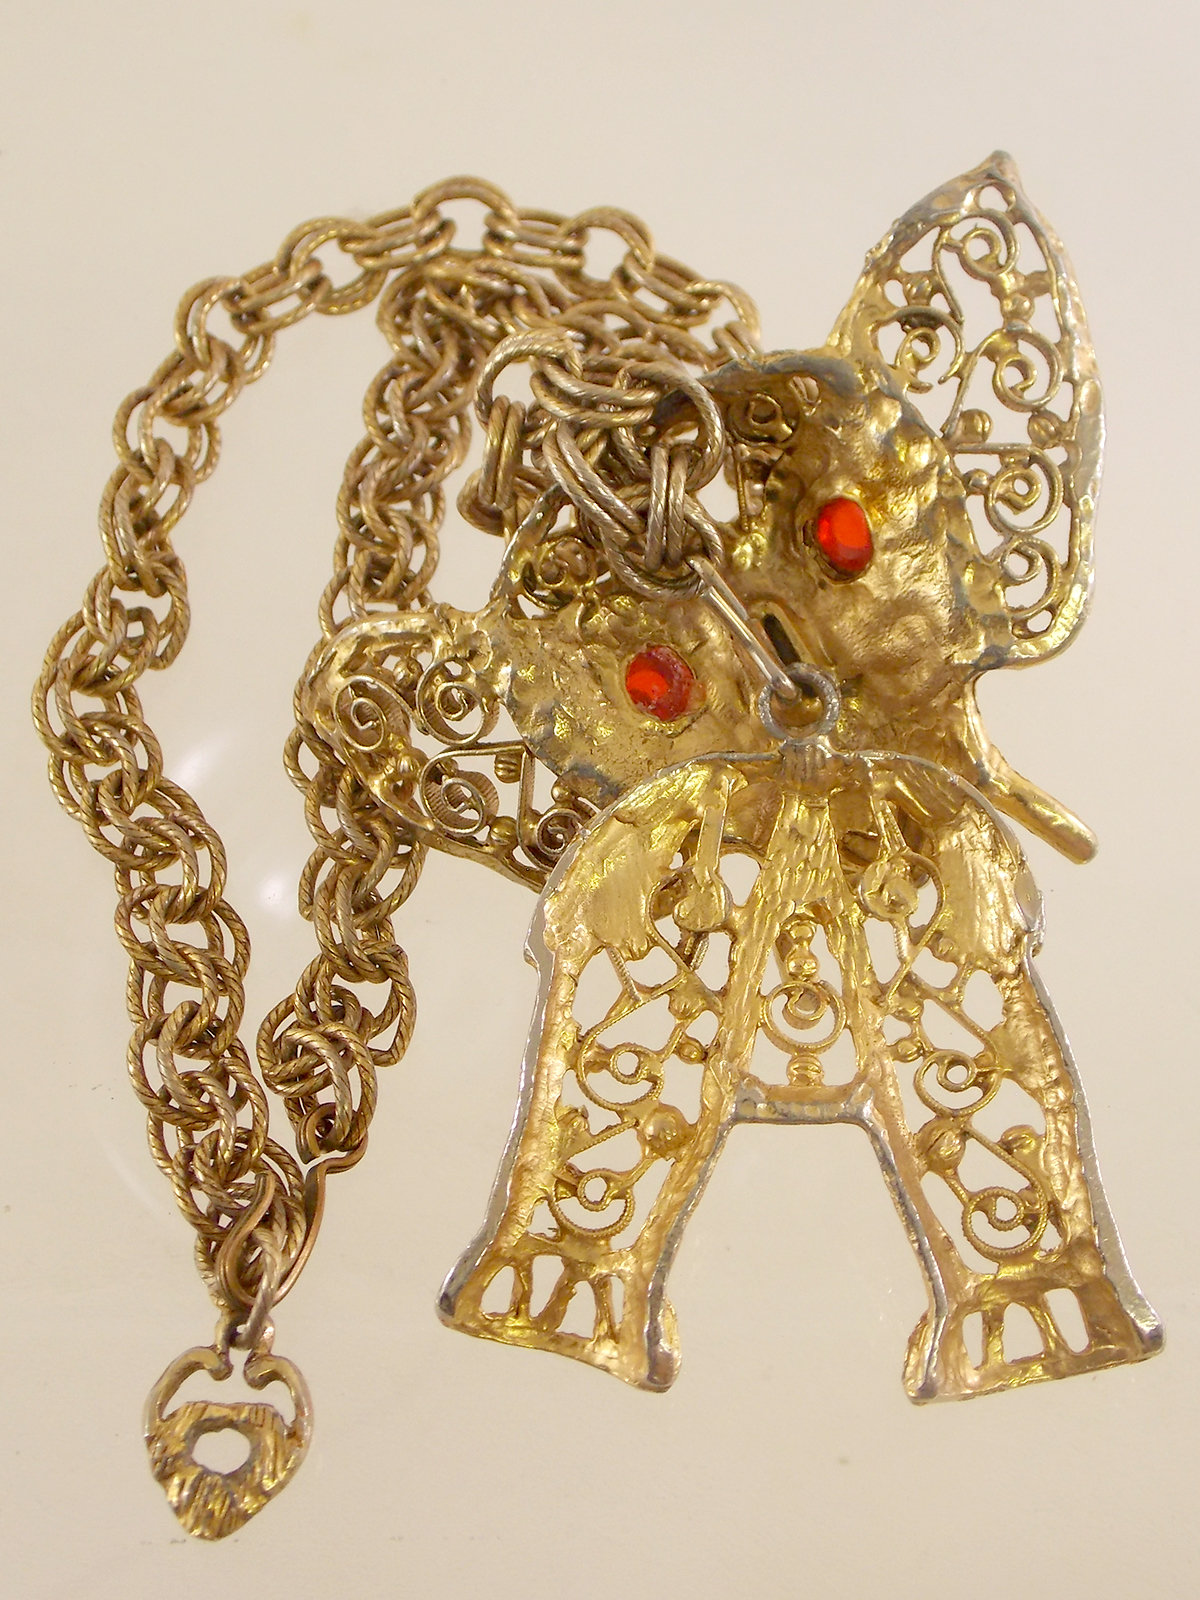 Huge Juliana Articulated Elephant Pendant